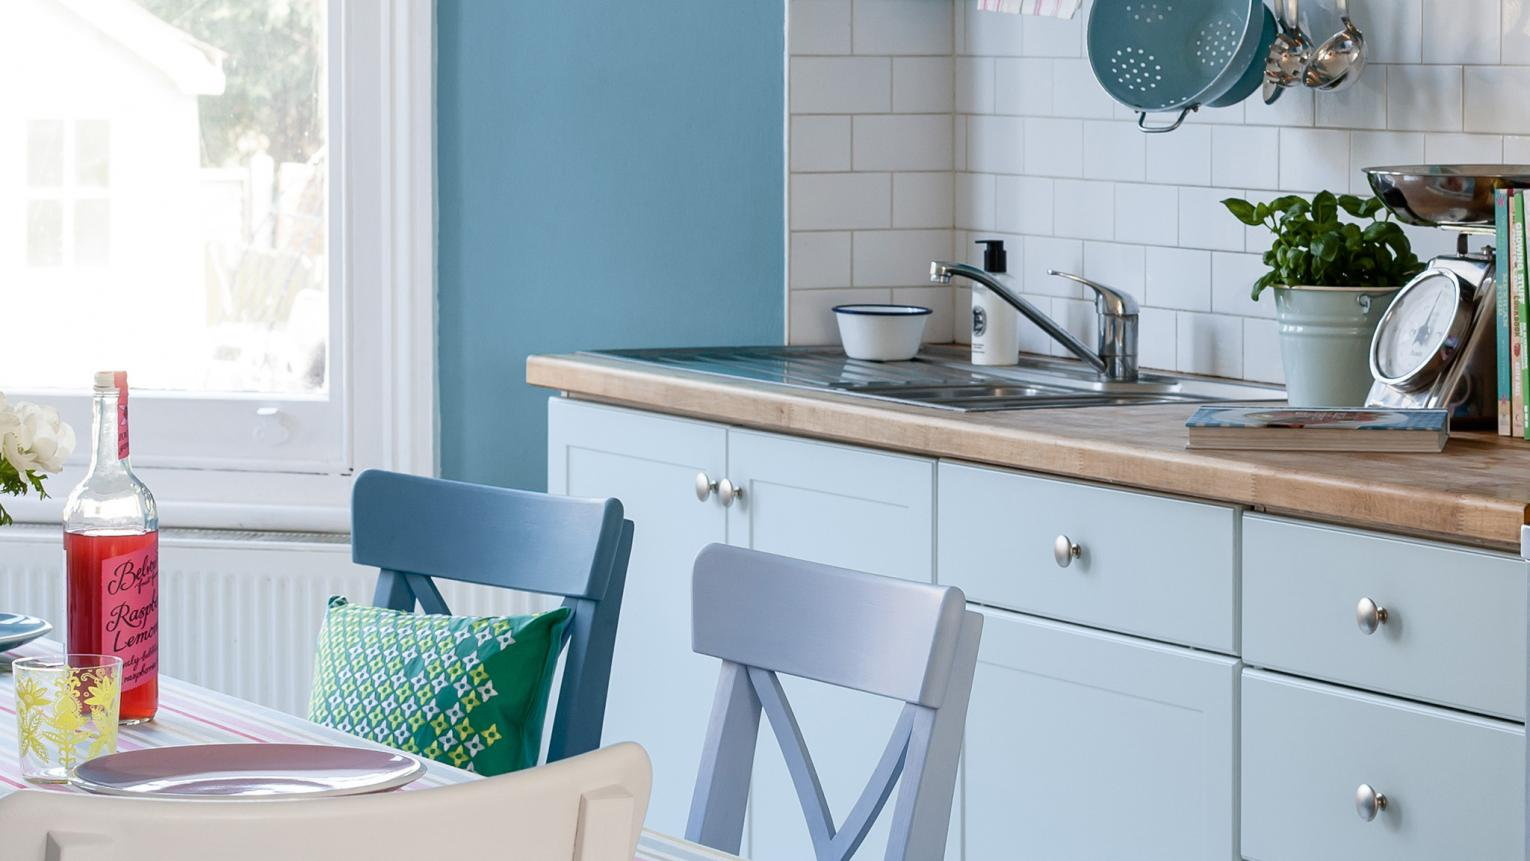 Give your kitchen a subtle wash of Dulux colour with pops of pretty pastel shades like powder blue, rose and sage.